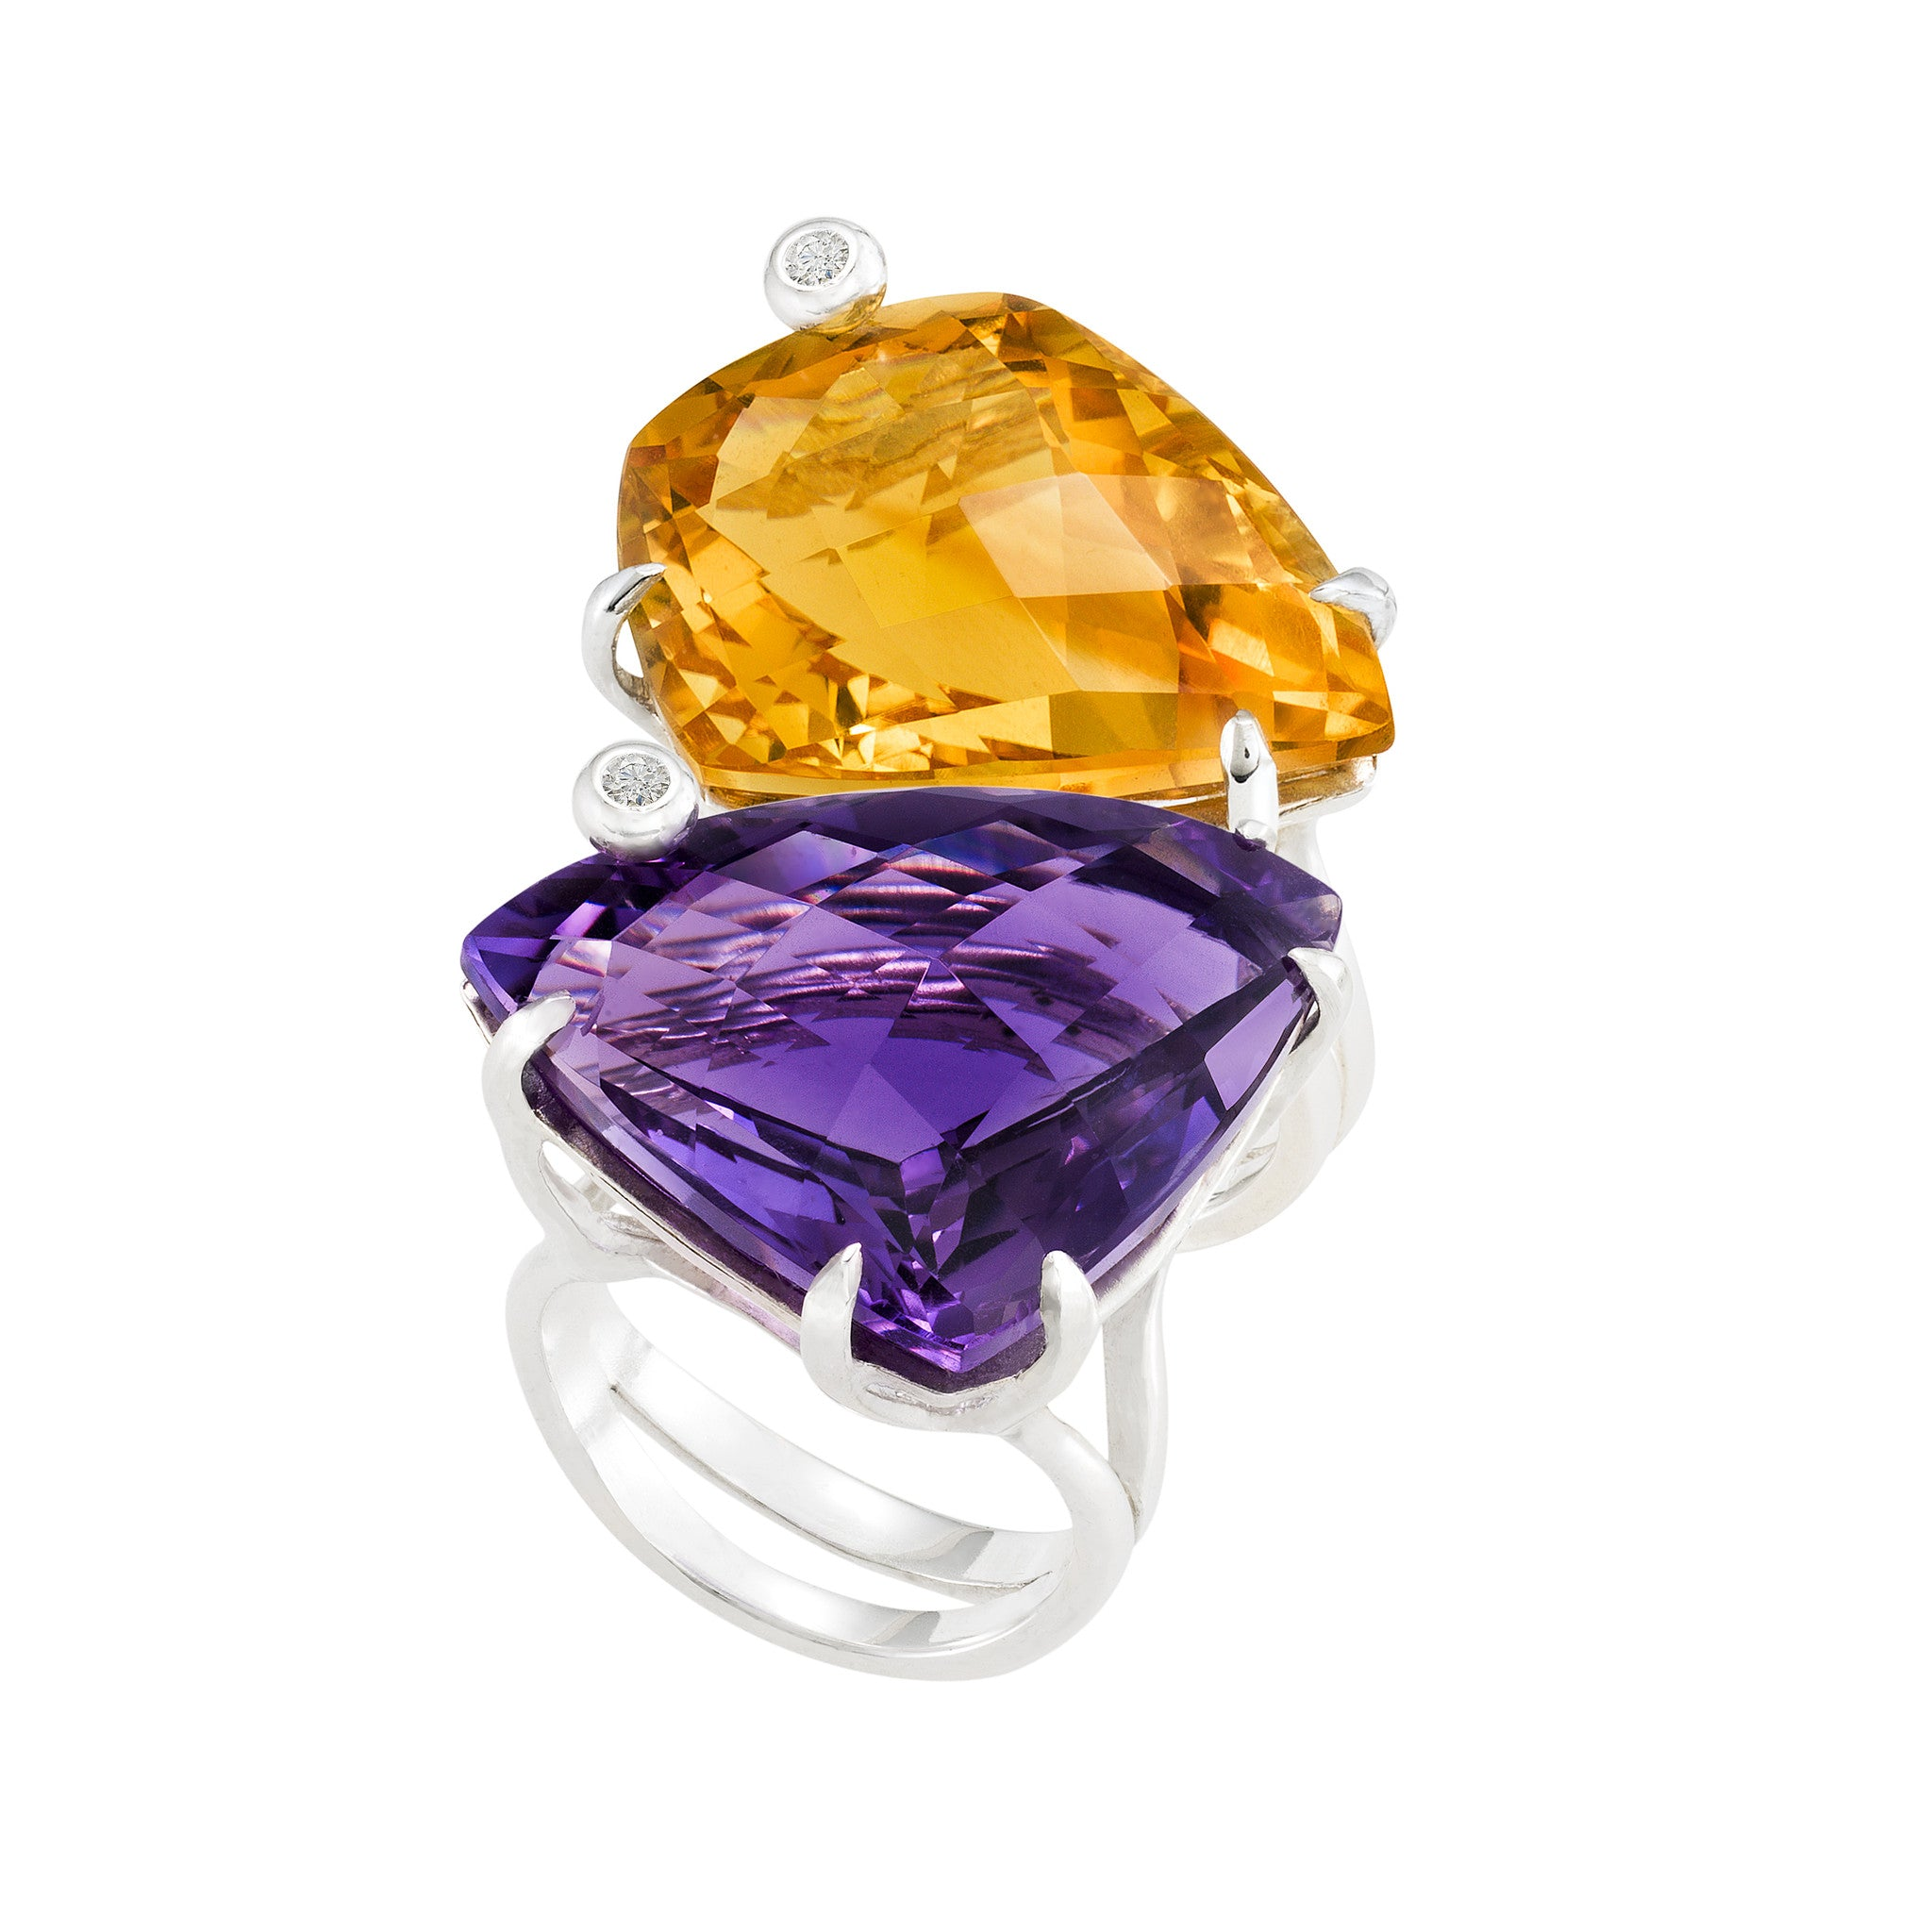 Triangle Cocktail Ring: Amethyst